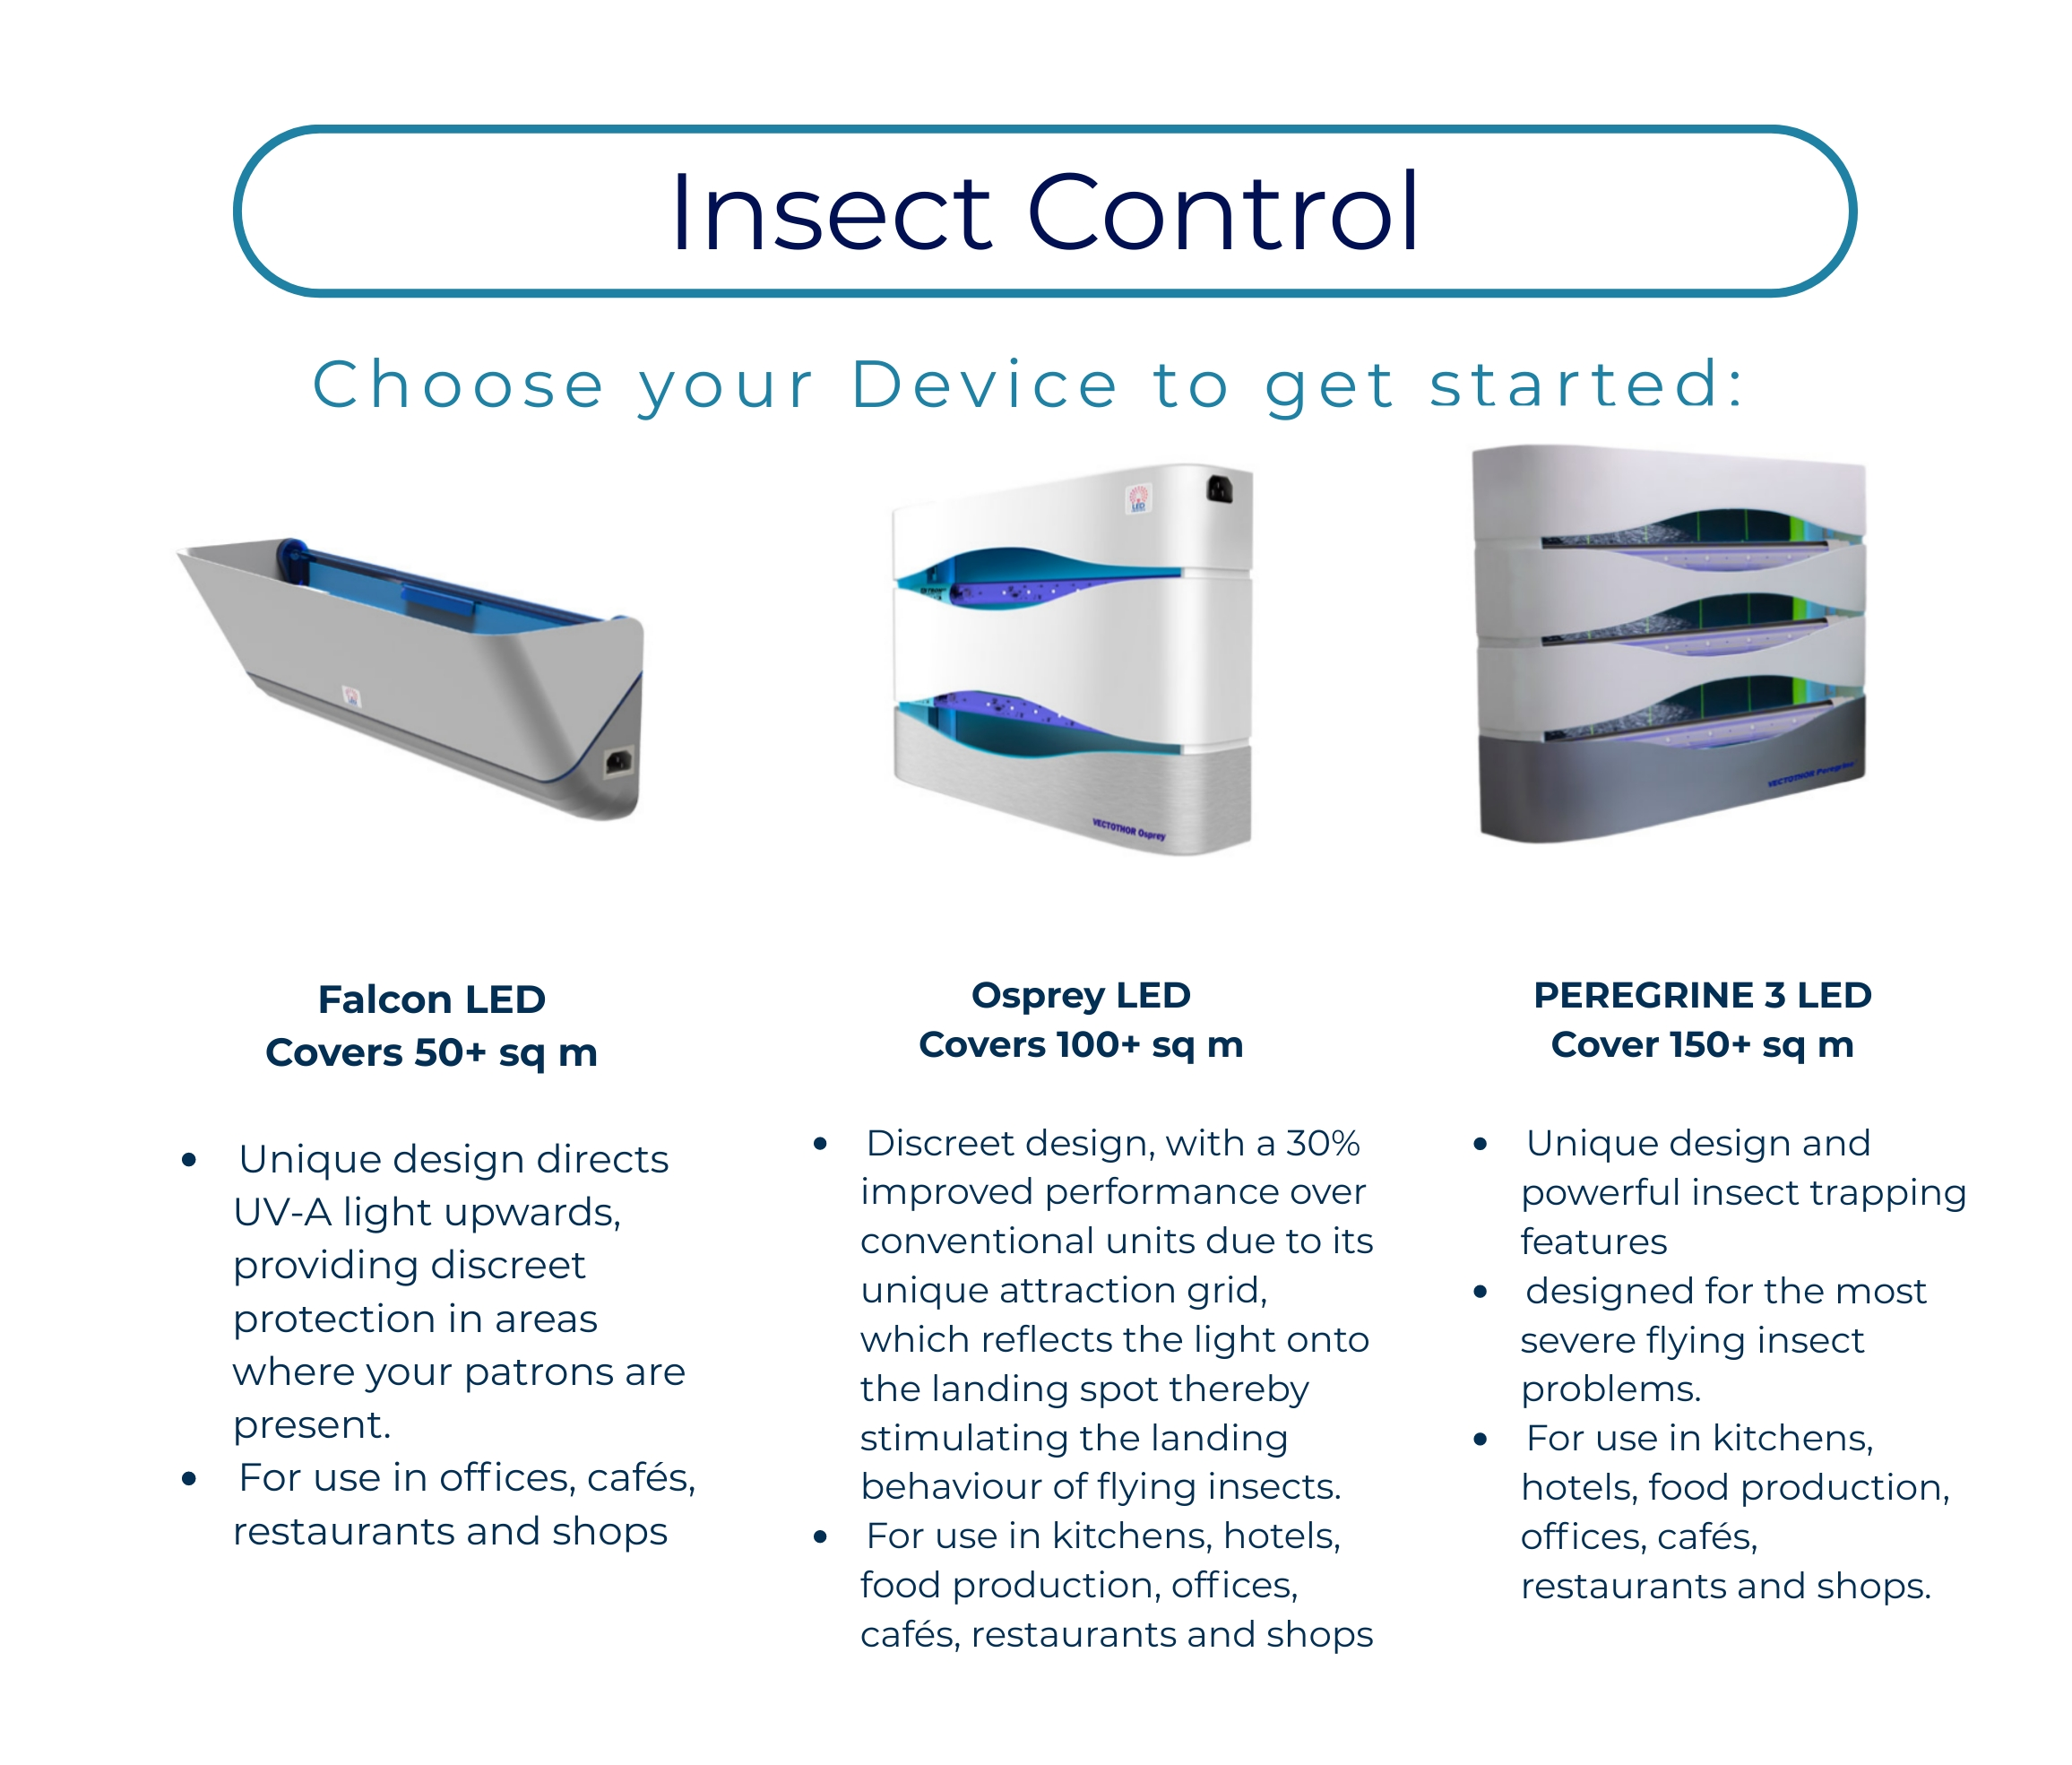 insect-control.jpg